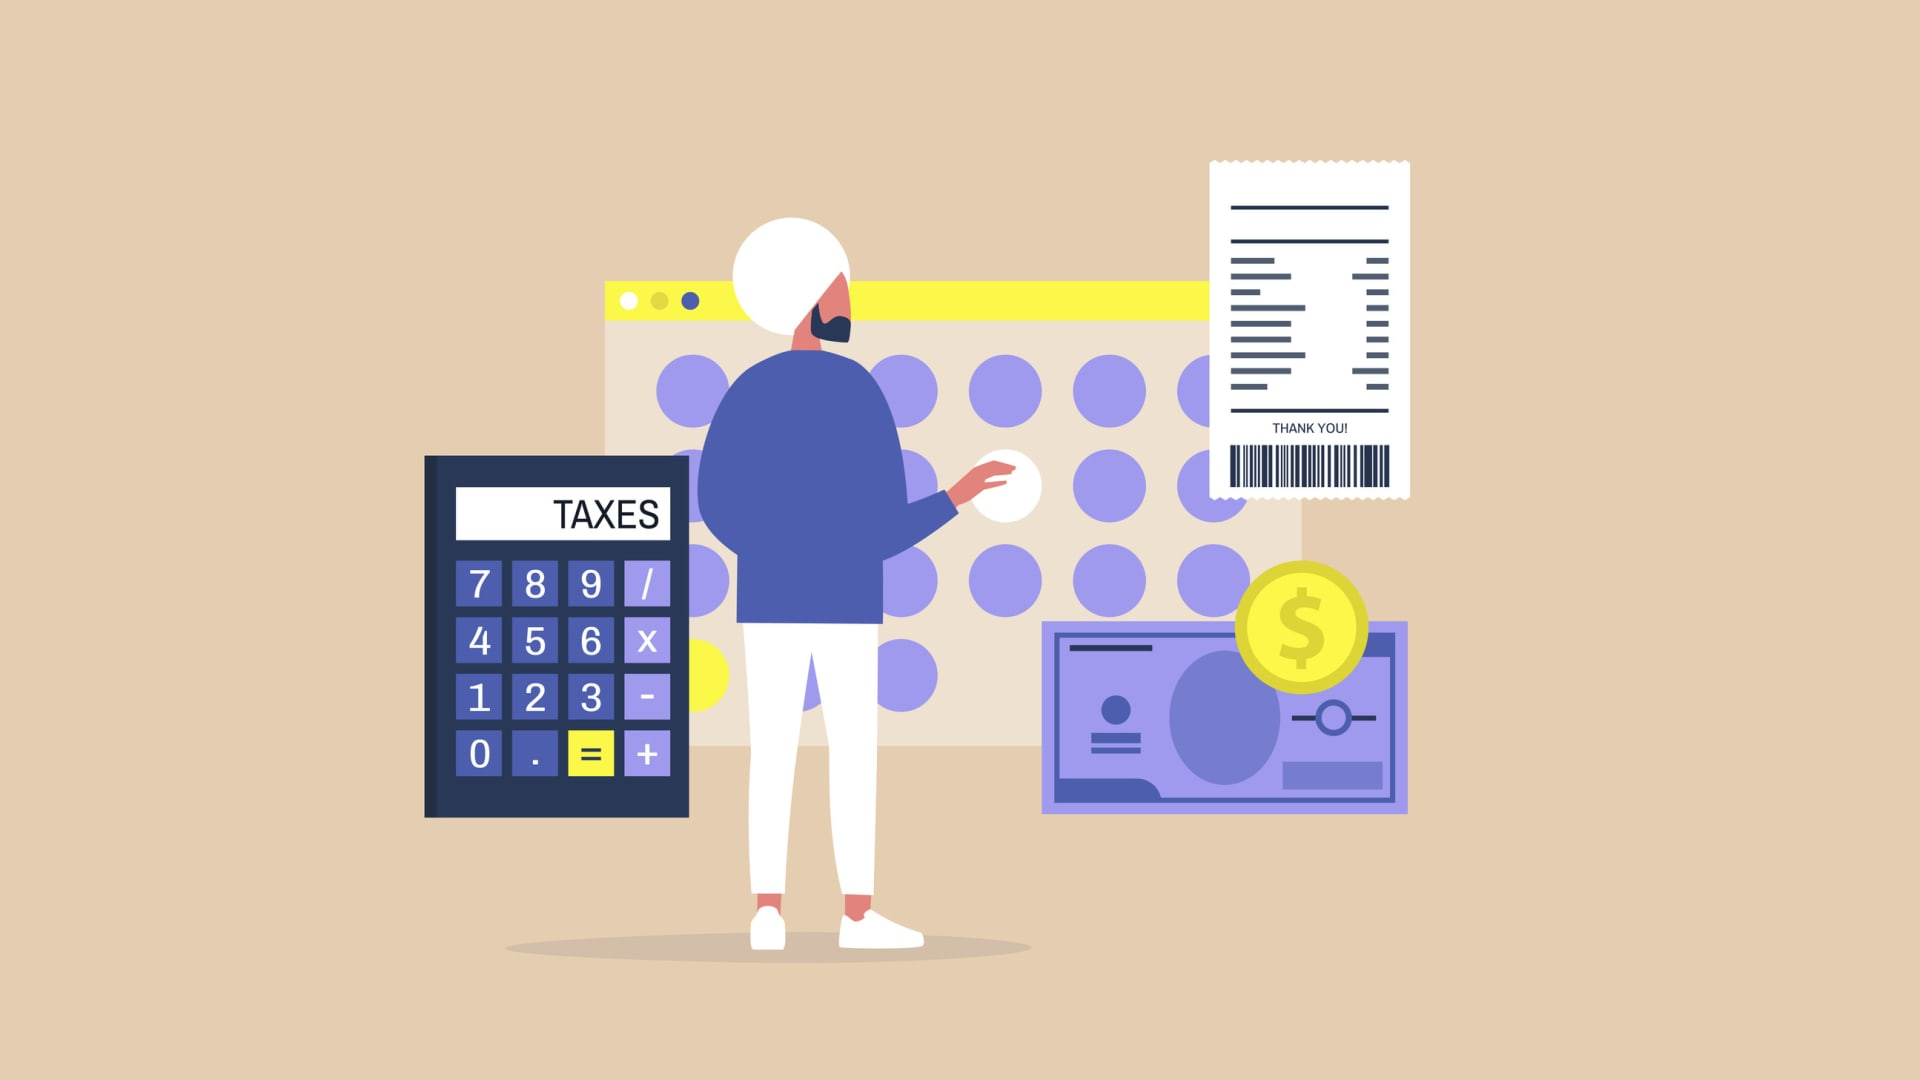 Working From Home Can Save You Money. Should Your Taxes Go Up?